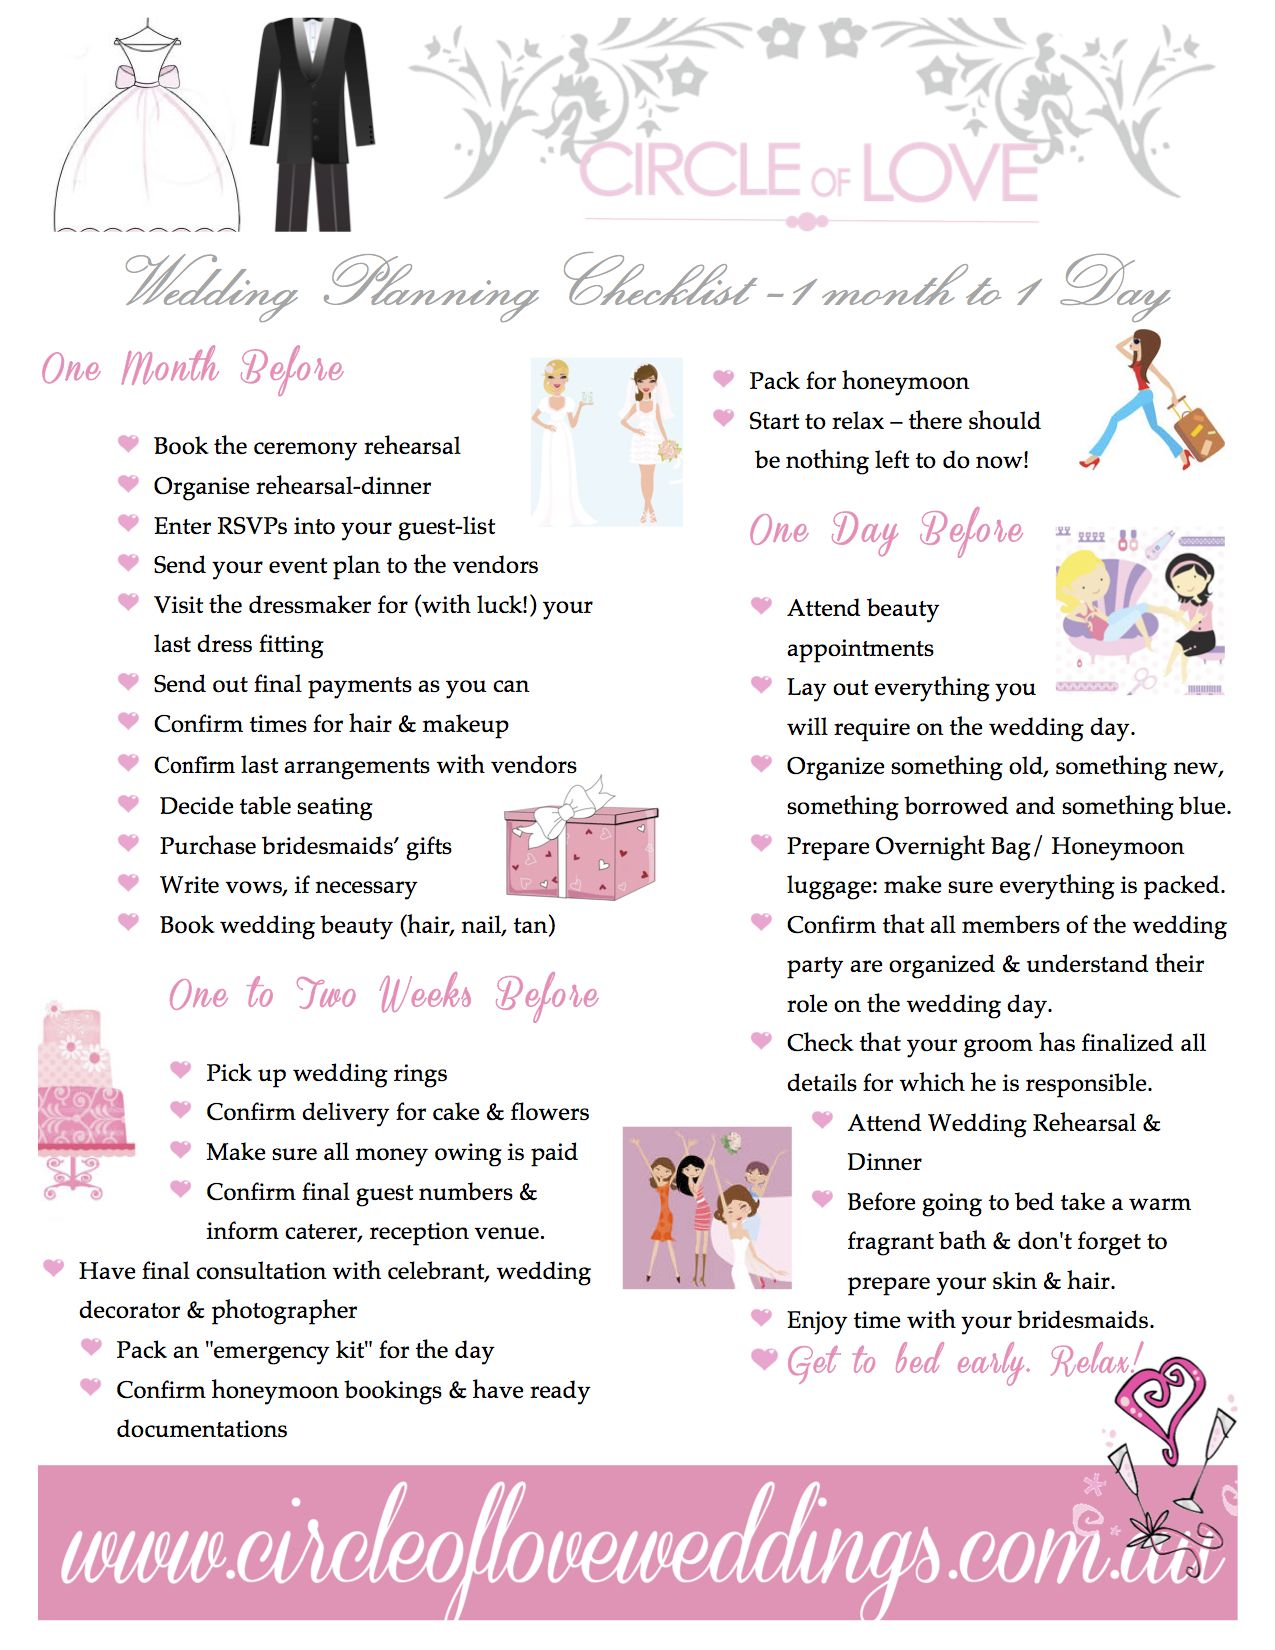 3) Wedding Planning checklist 1 month before Download our